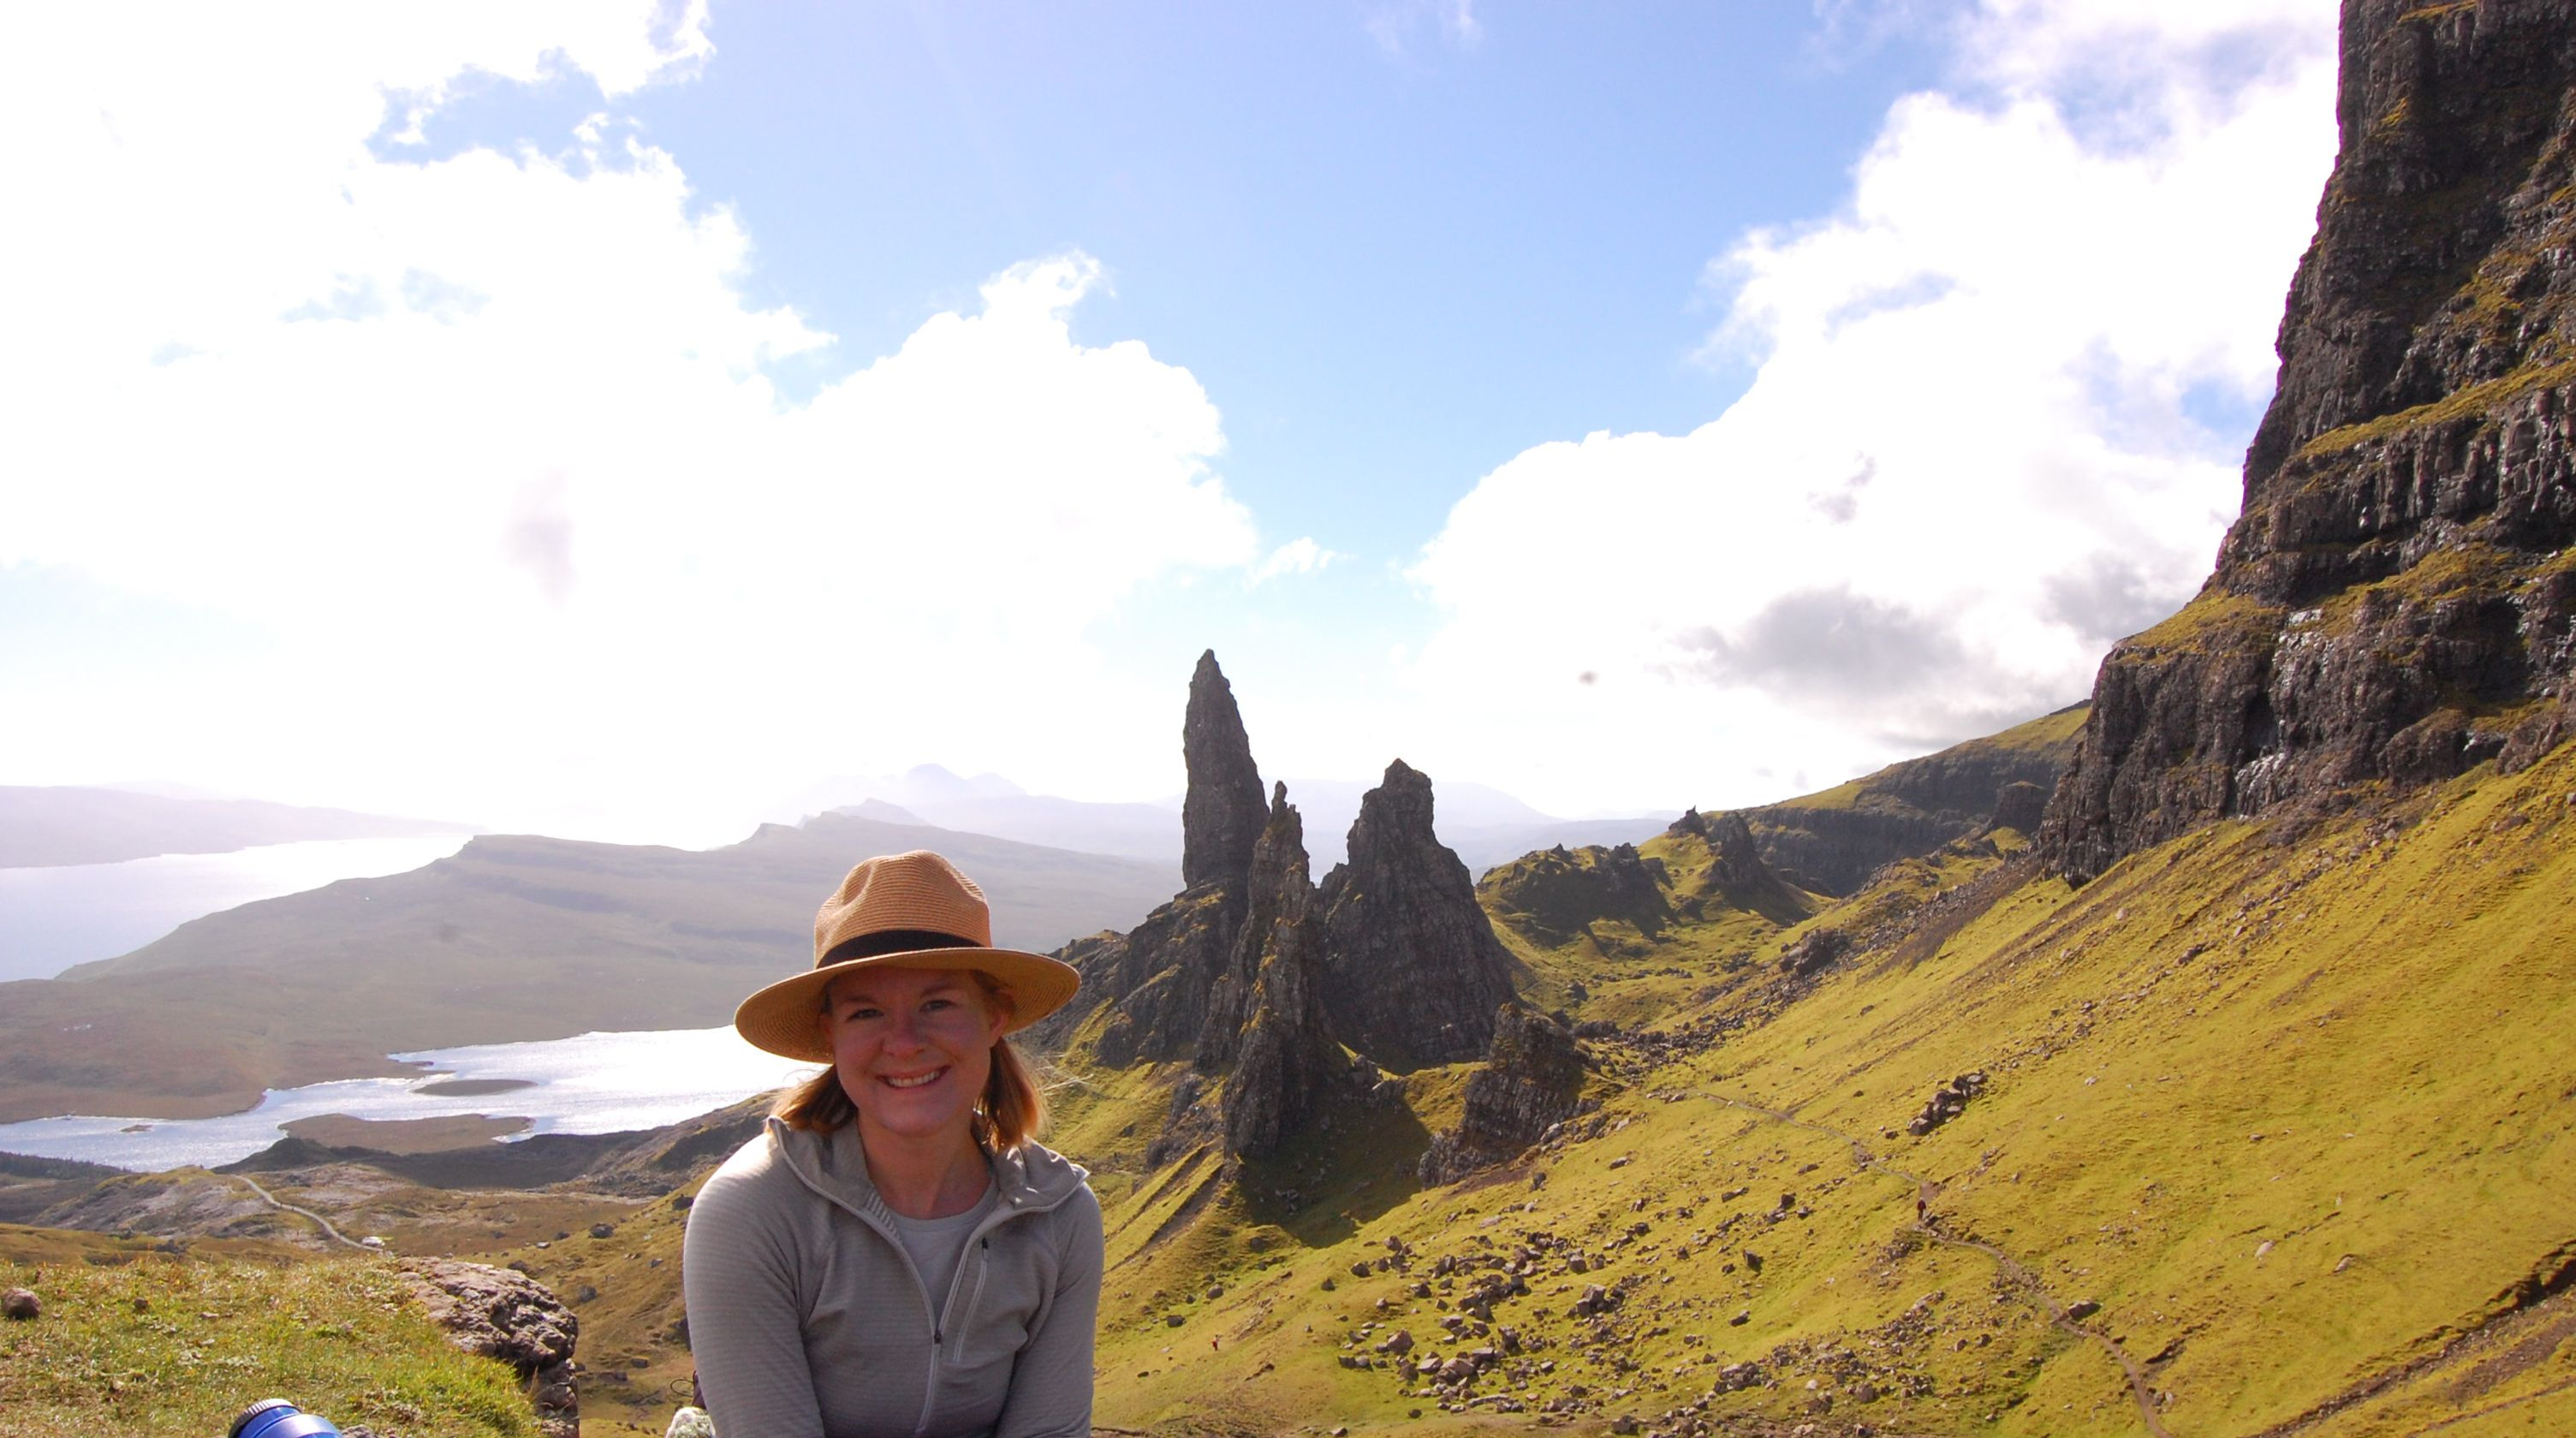 When traveling heals: A trip to Scotland helped mend wounds from divorce